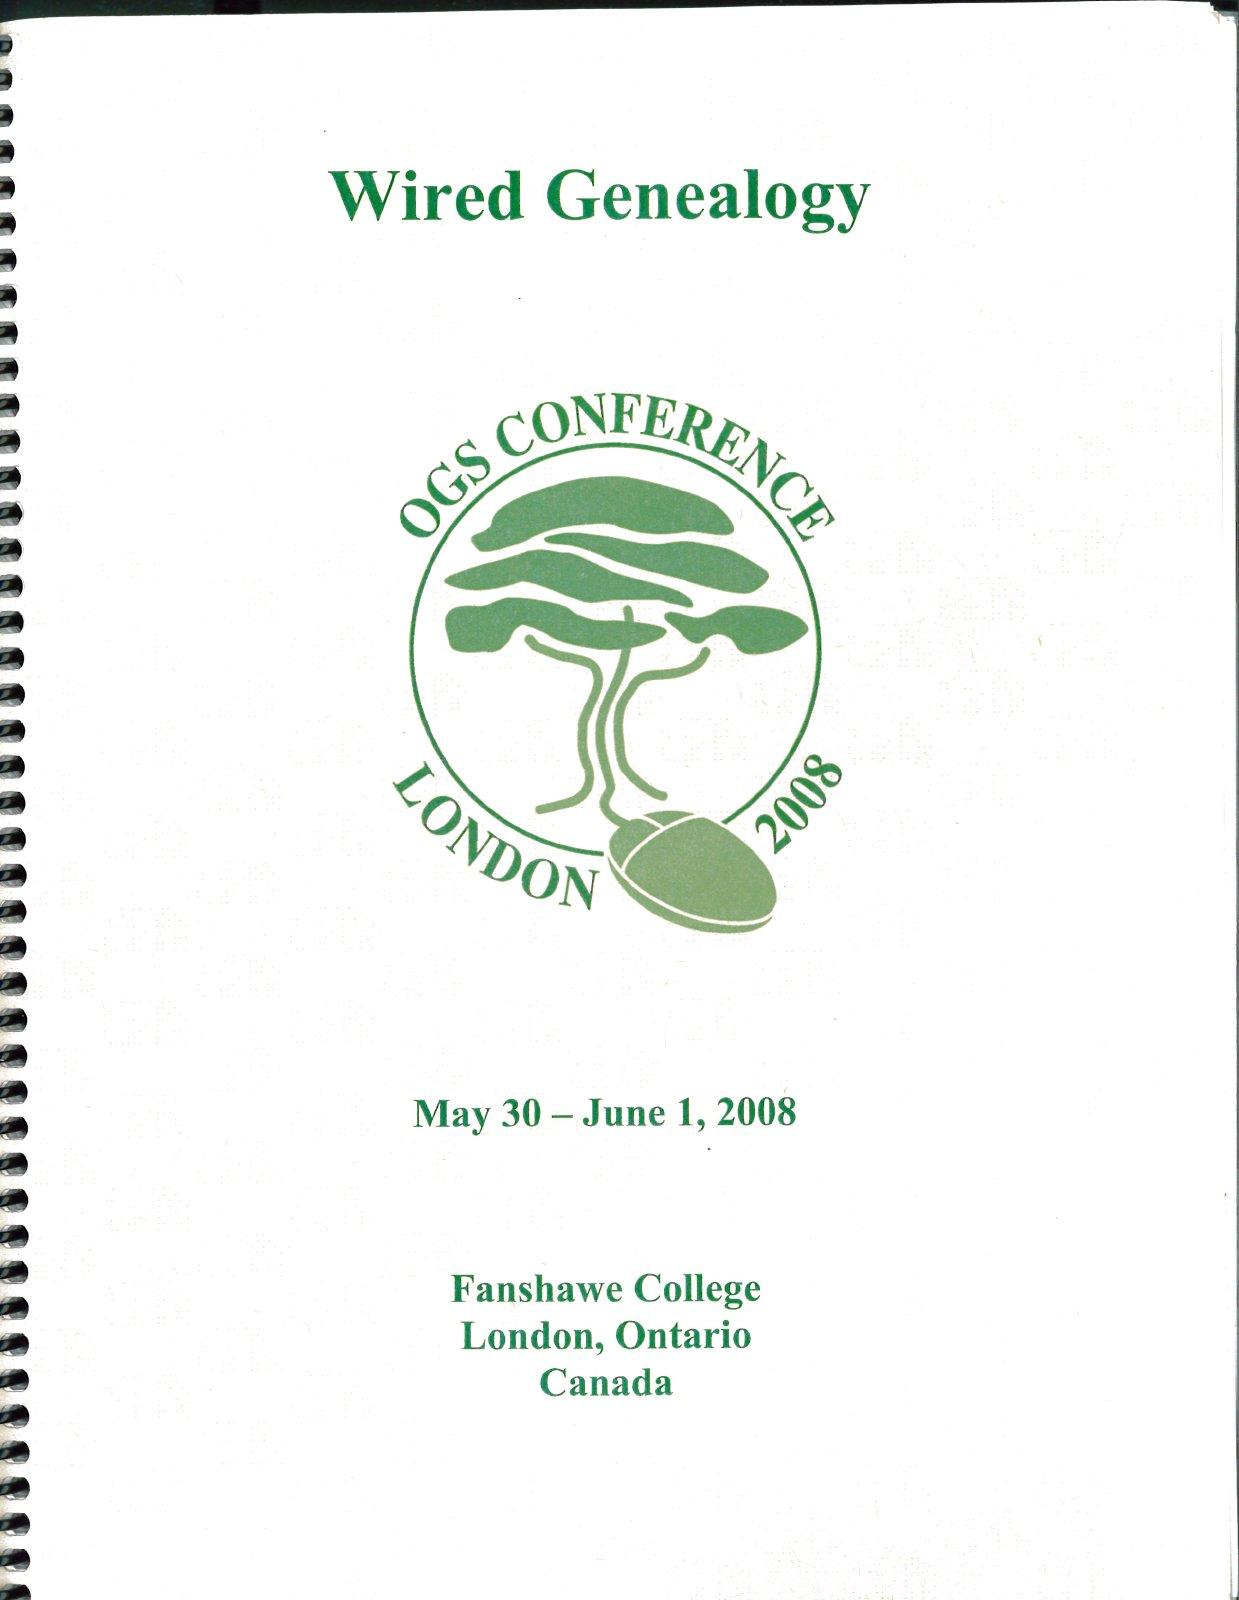 OGS Conference 2008: Wired Genealogy: The Ontario Genealogical ...